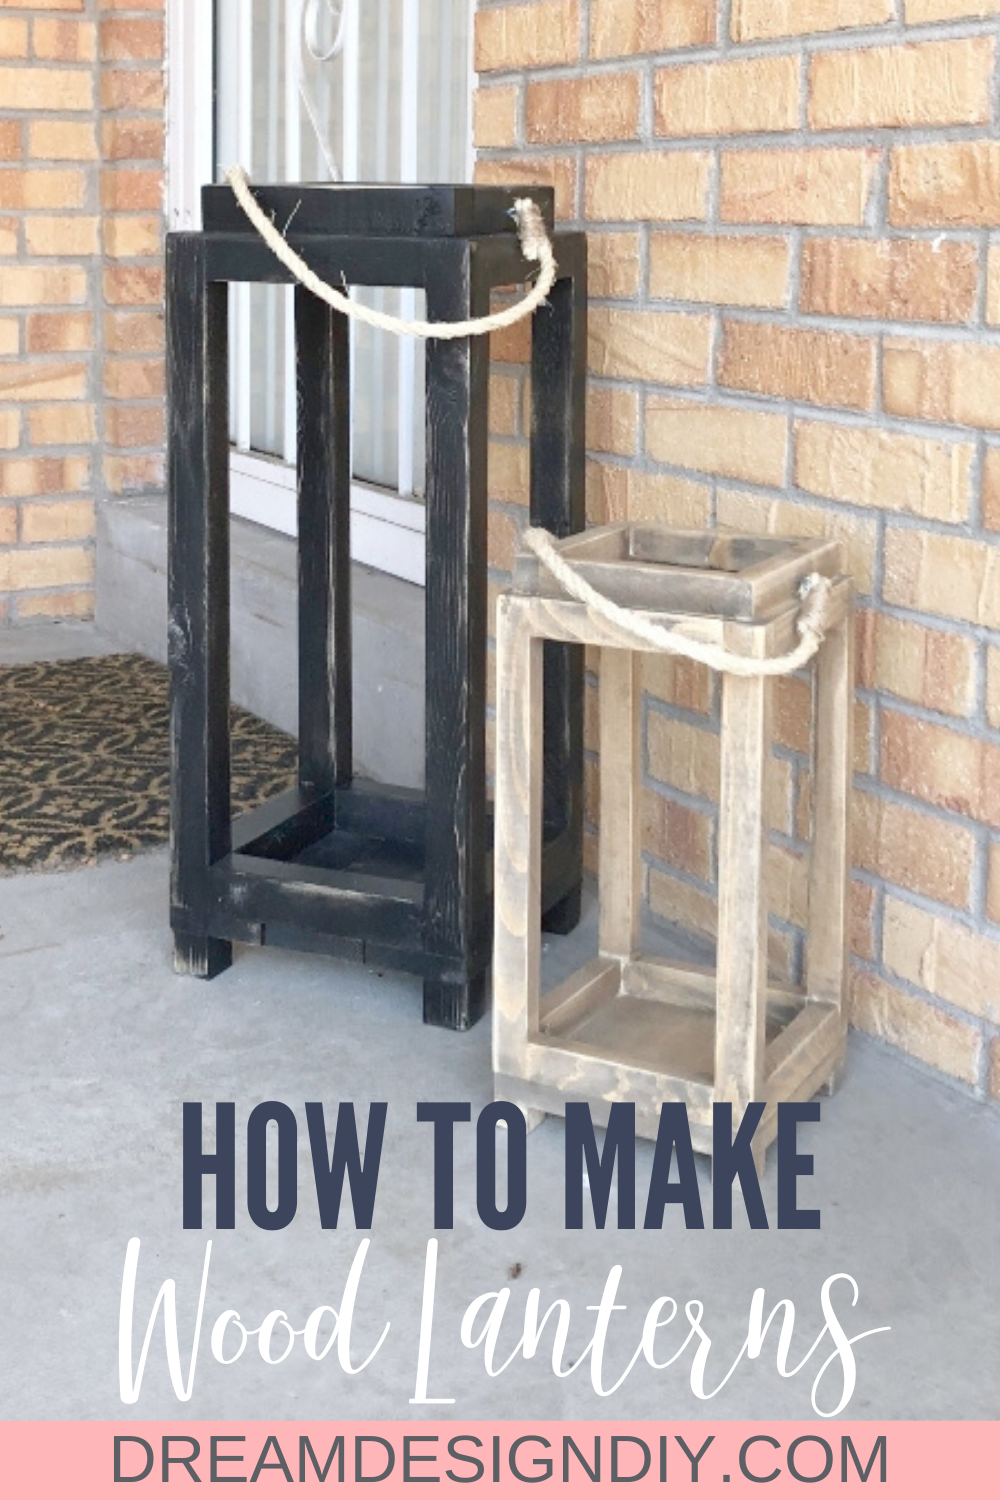 How to Build Simple DIY Lanterns - Dream Design DIY